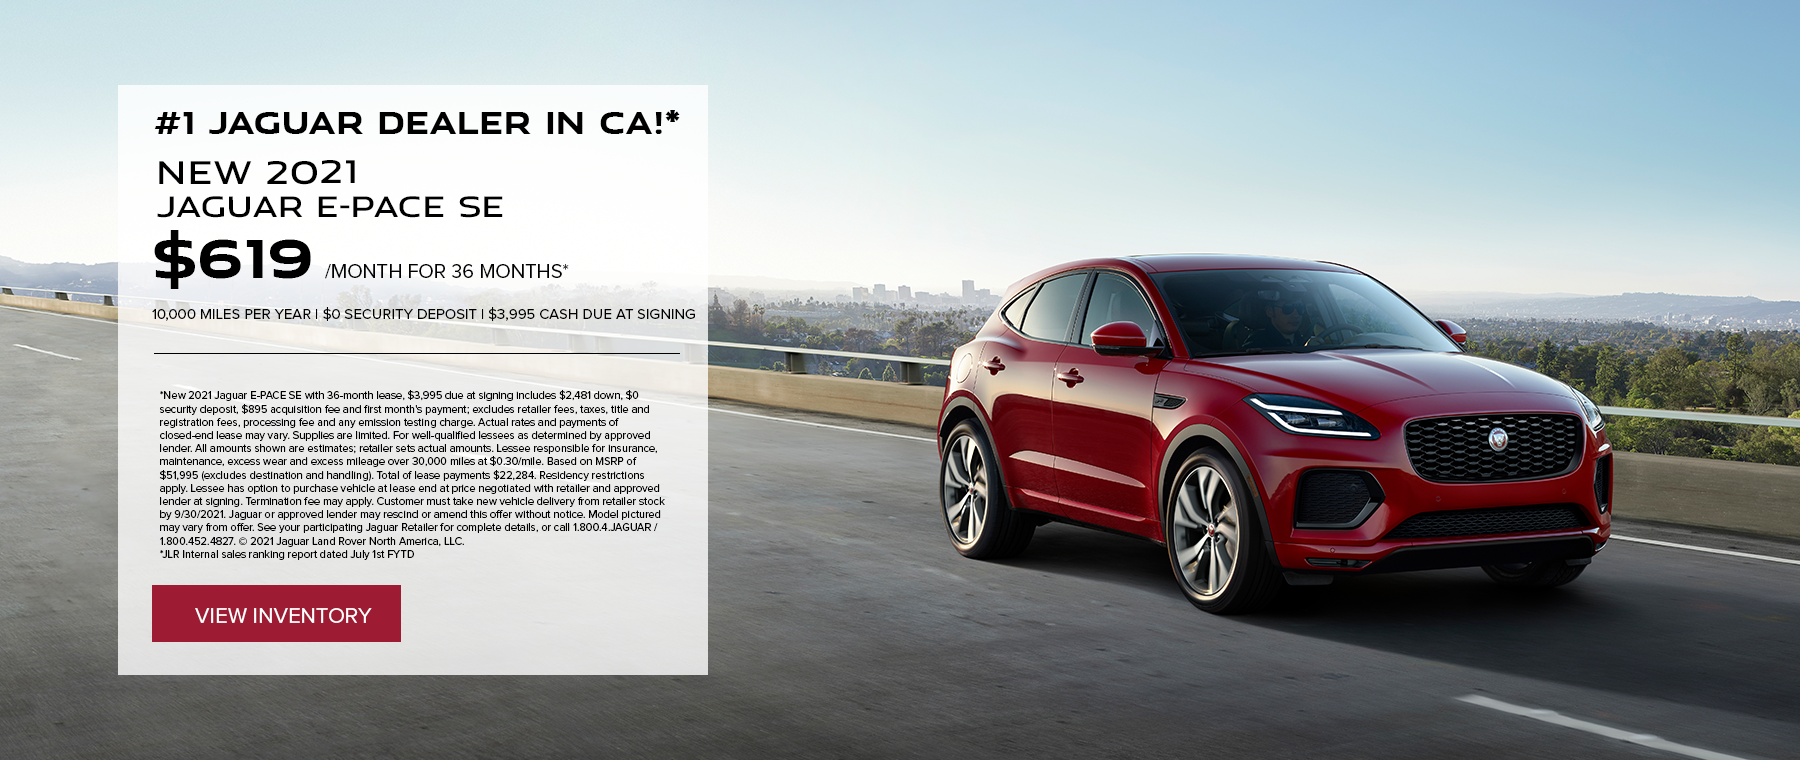 NEW 2021 JAGUAR E-PACE SE. $619 PER MONTH. 36 MONTH LEASE TERM. $3,995 CASH DUE AT SIGNING. $0 SECURITY DEPOSIT. 10,000 MILES PER YEAR. EXCLUDES RETAILER FEES, TAXES, TITLE AND REGISTRATION FEES, PROCESSING FEE AND ANY EMISSION TESTING CHARGE. OFFER ENDS 9/30/2021.